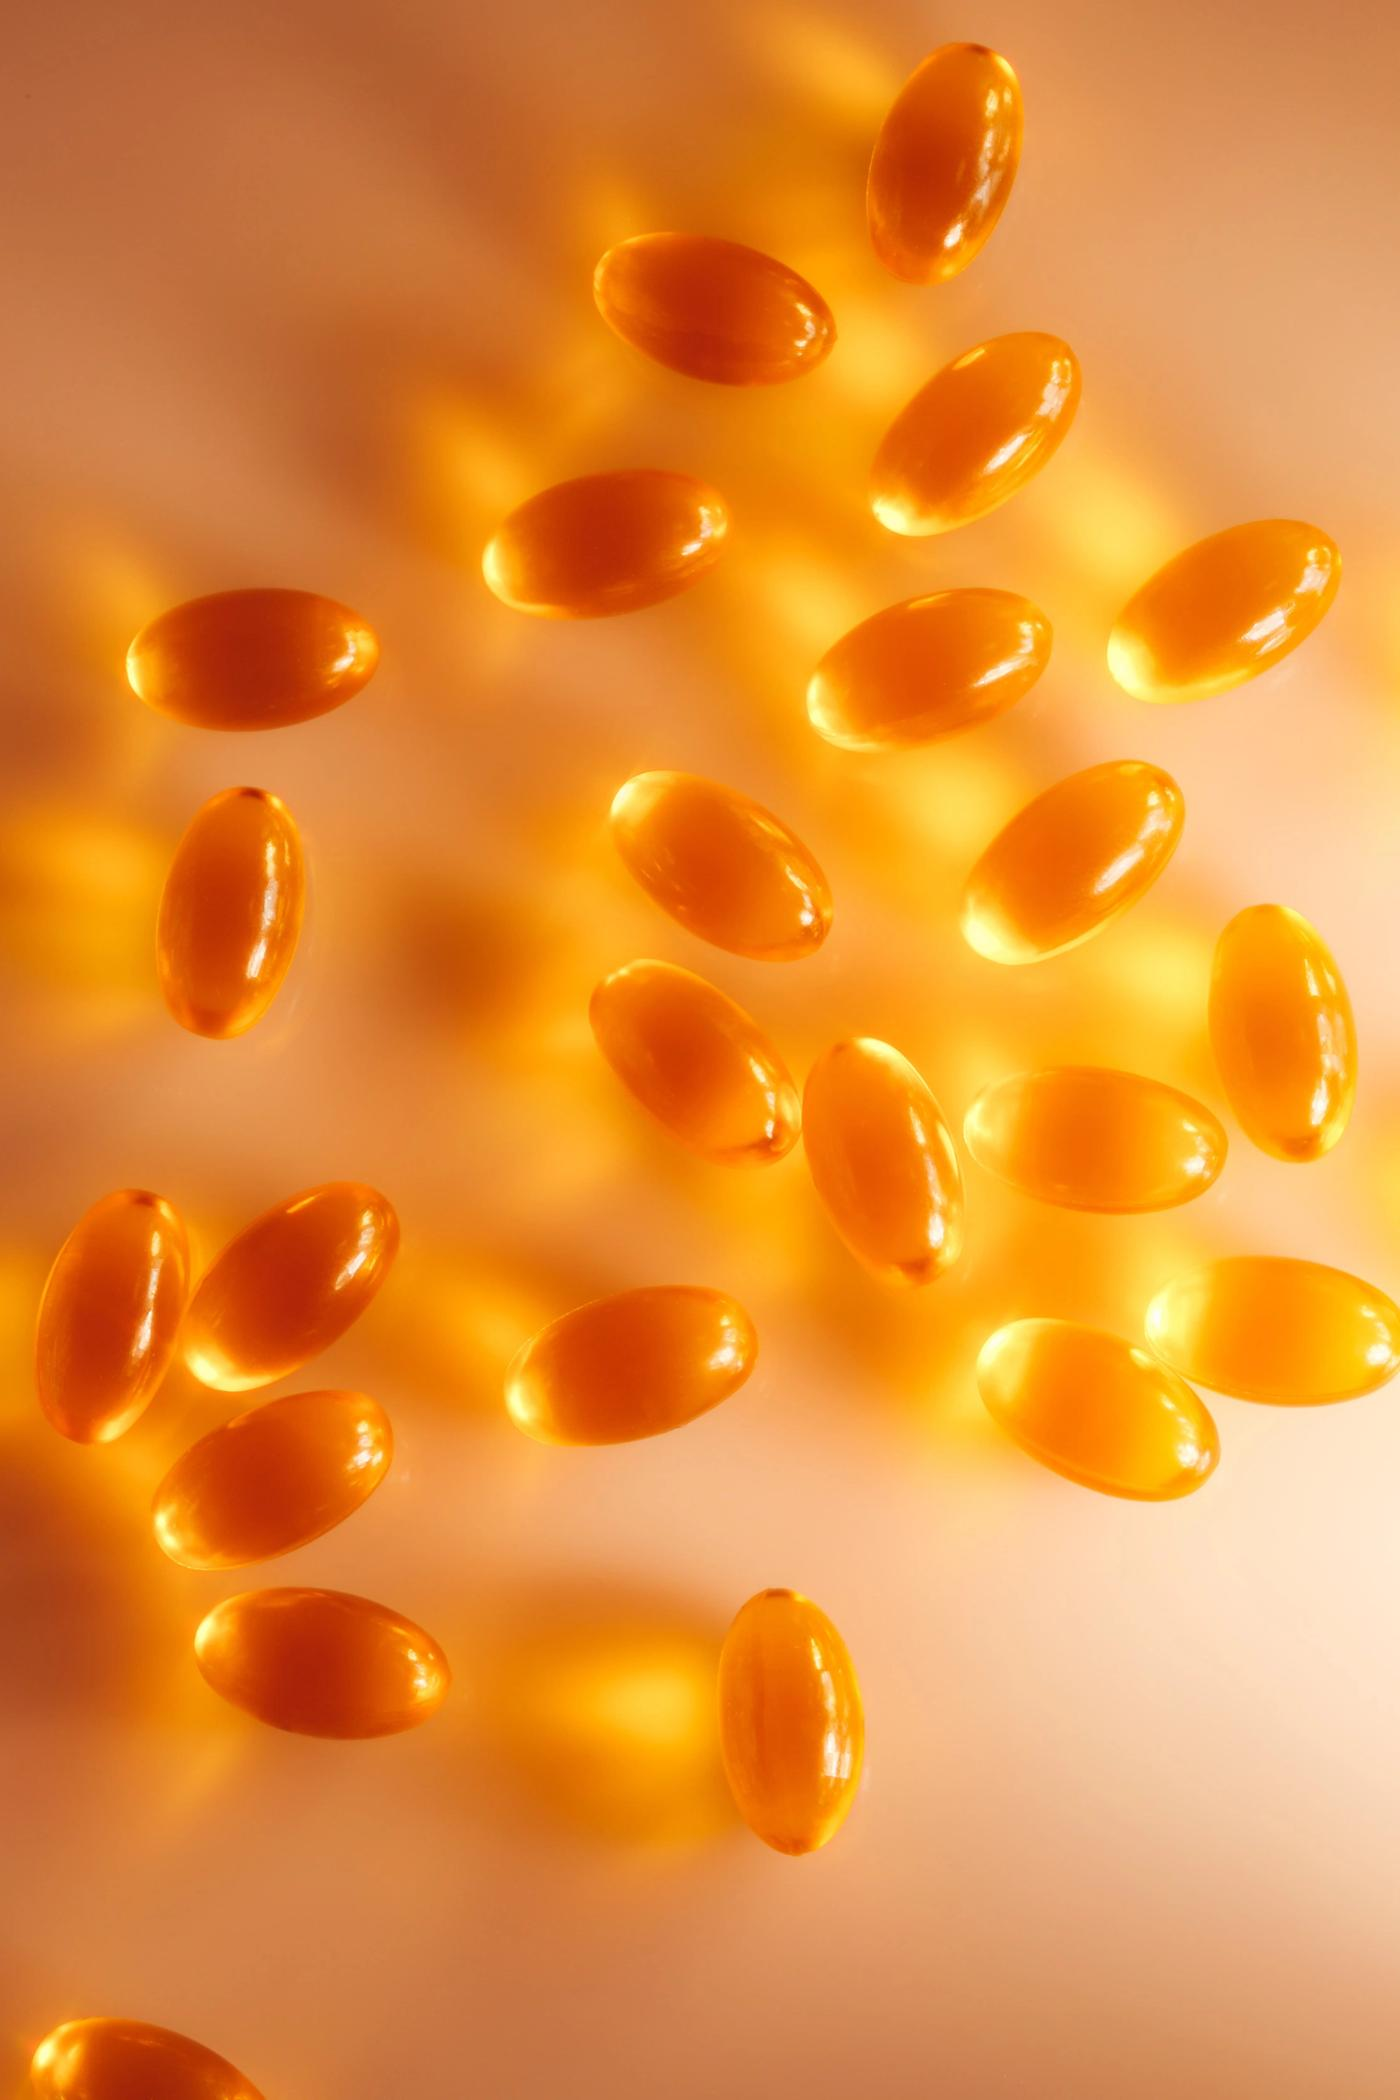 CBD Capsules vs. Oil: What are the Main Differences?